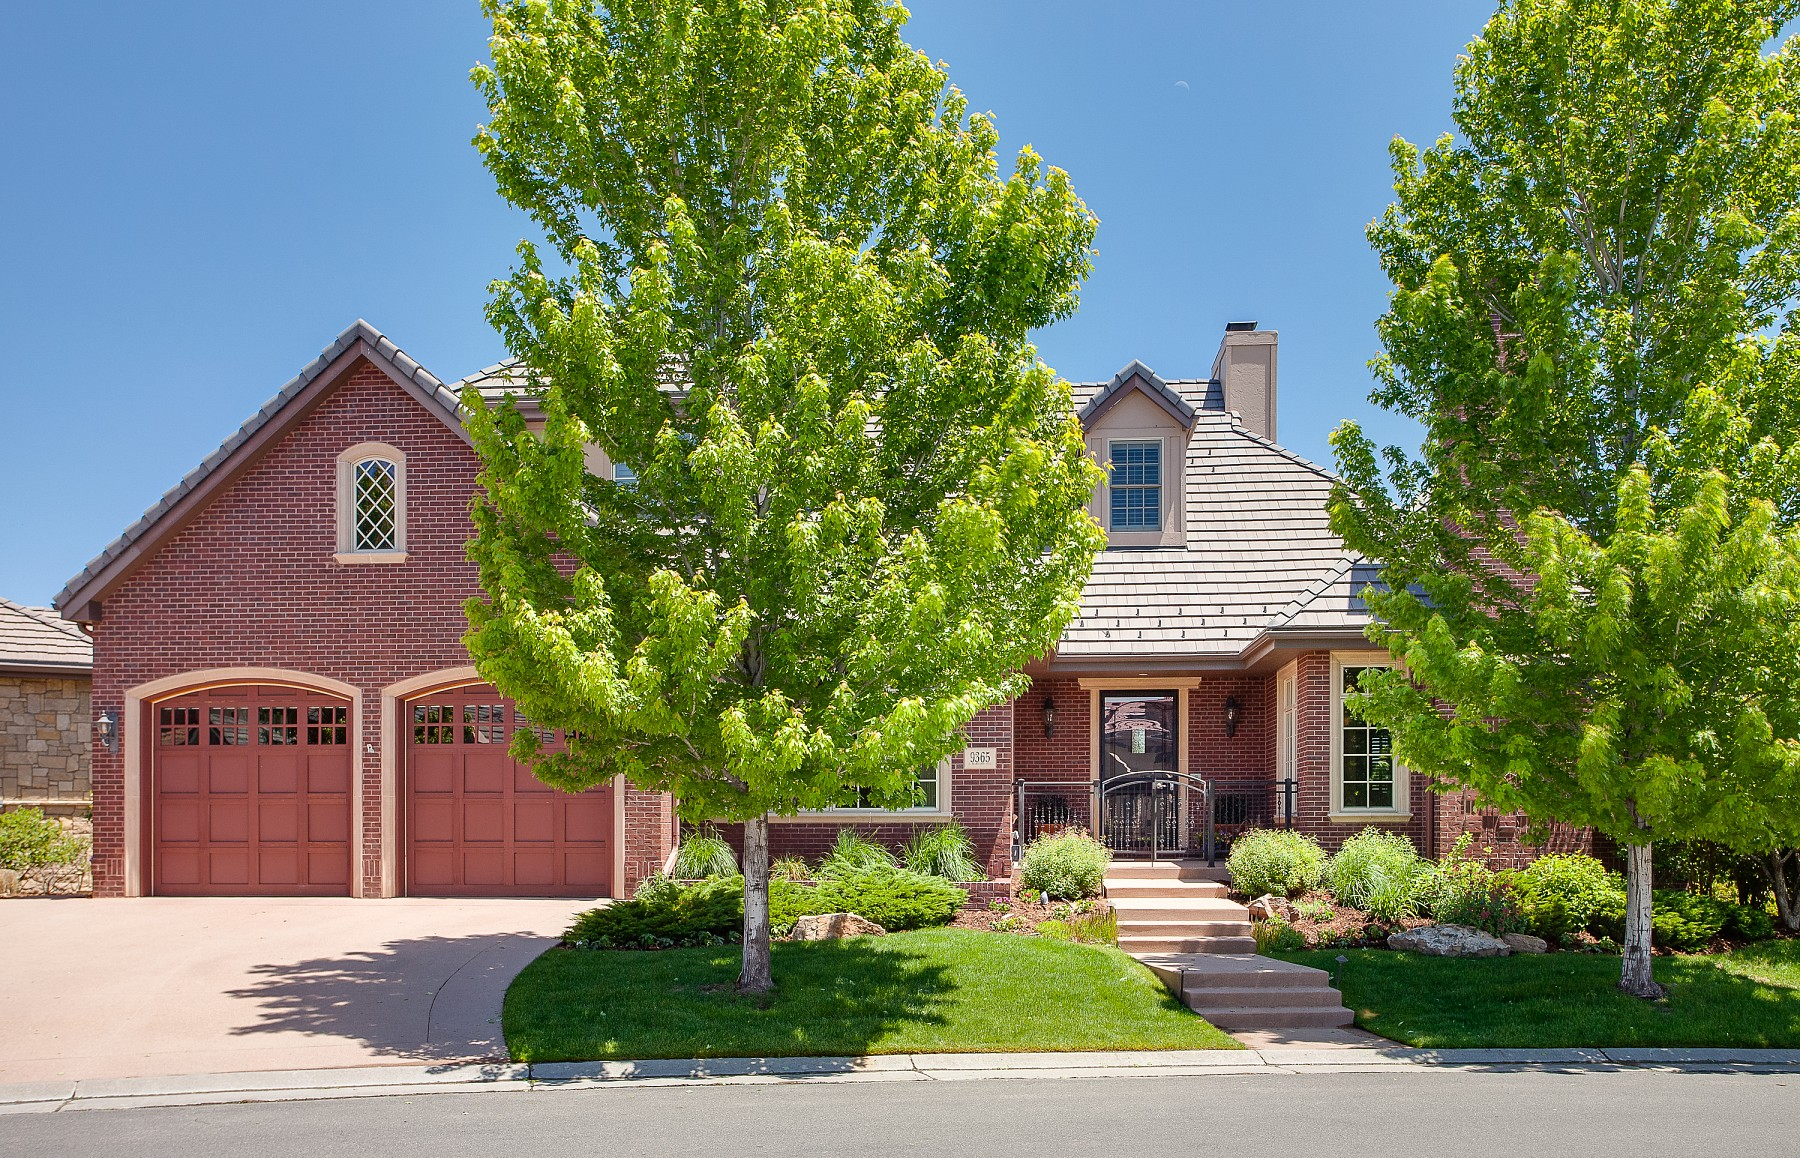 9365 E. Harvard Avenue, Denver, CO 80231